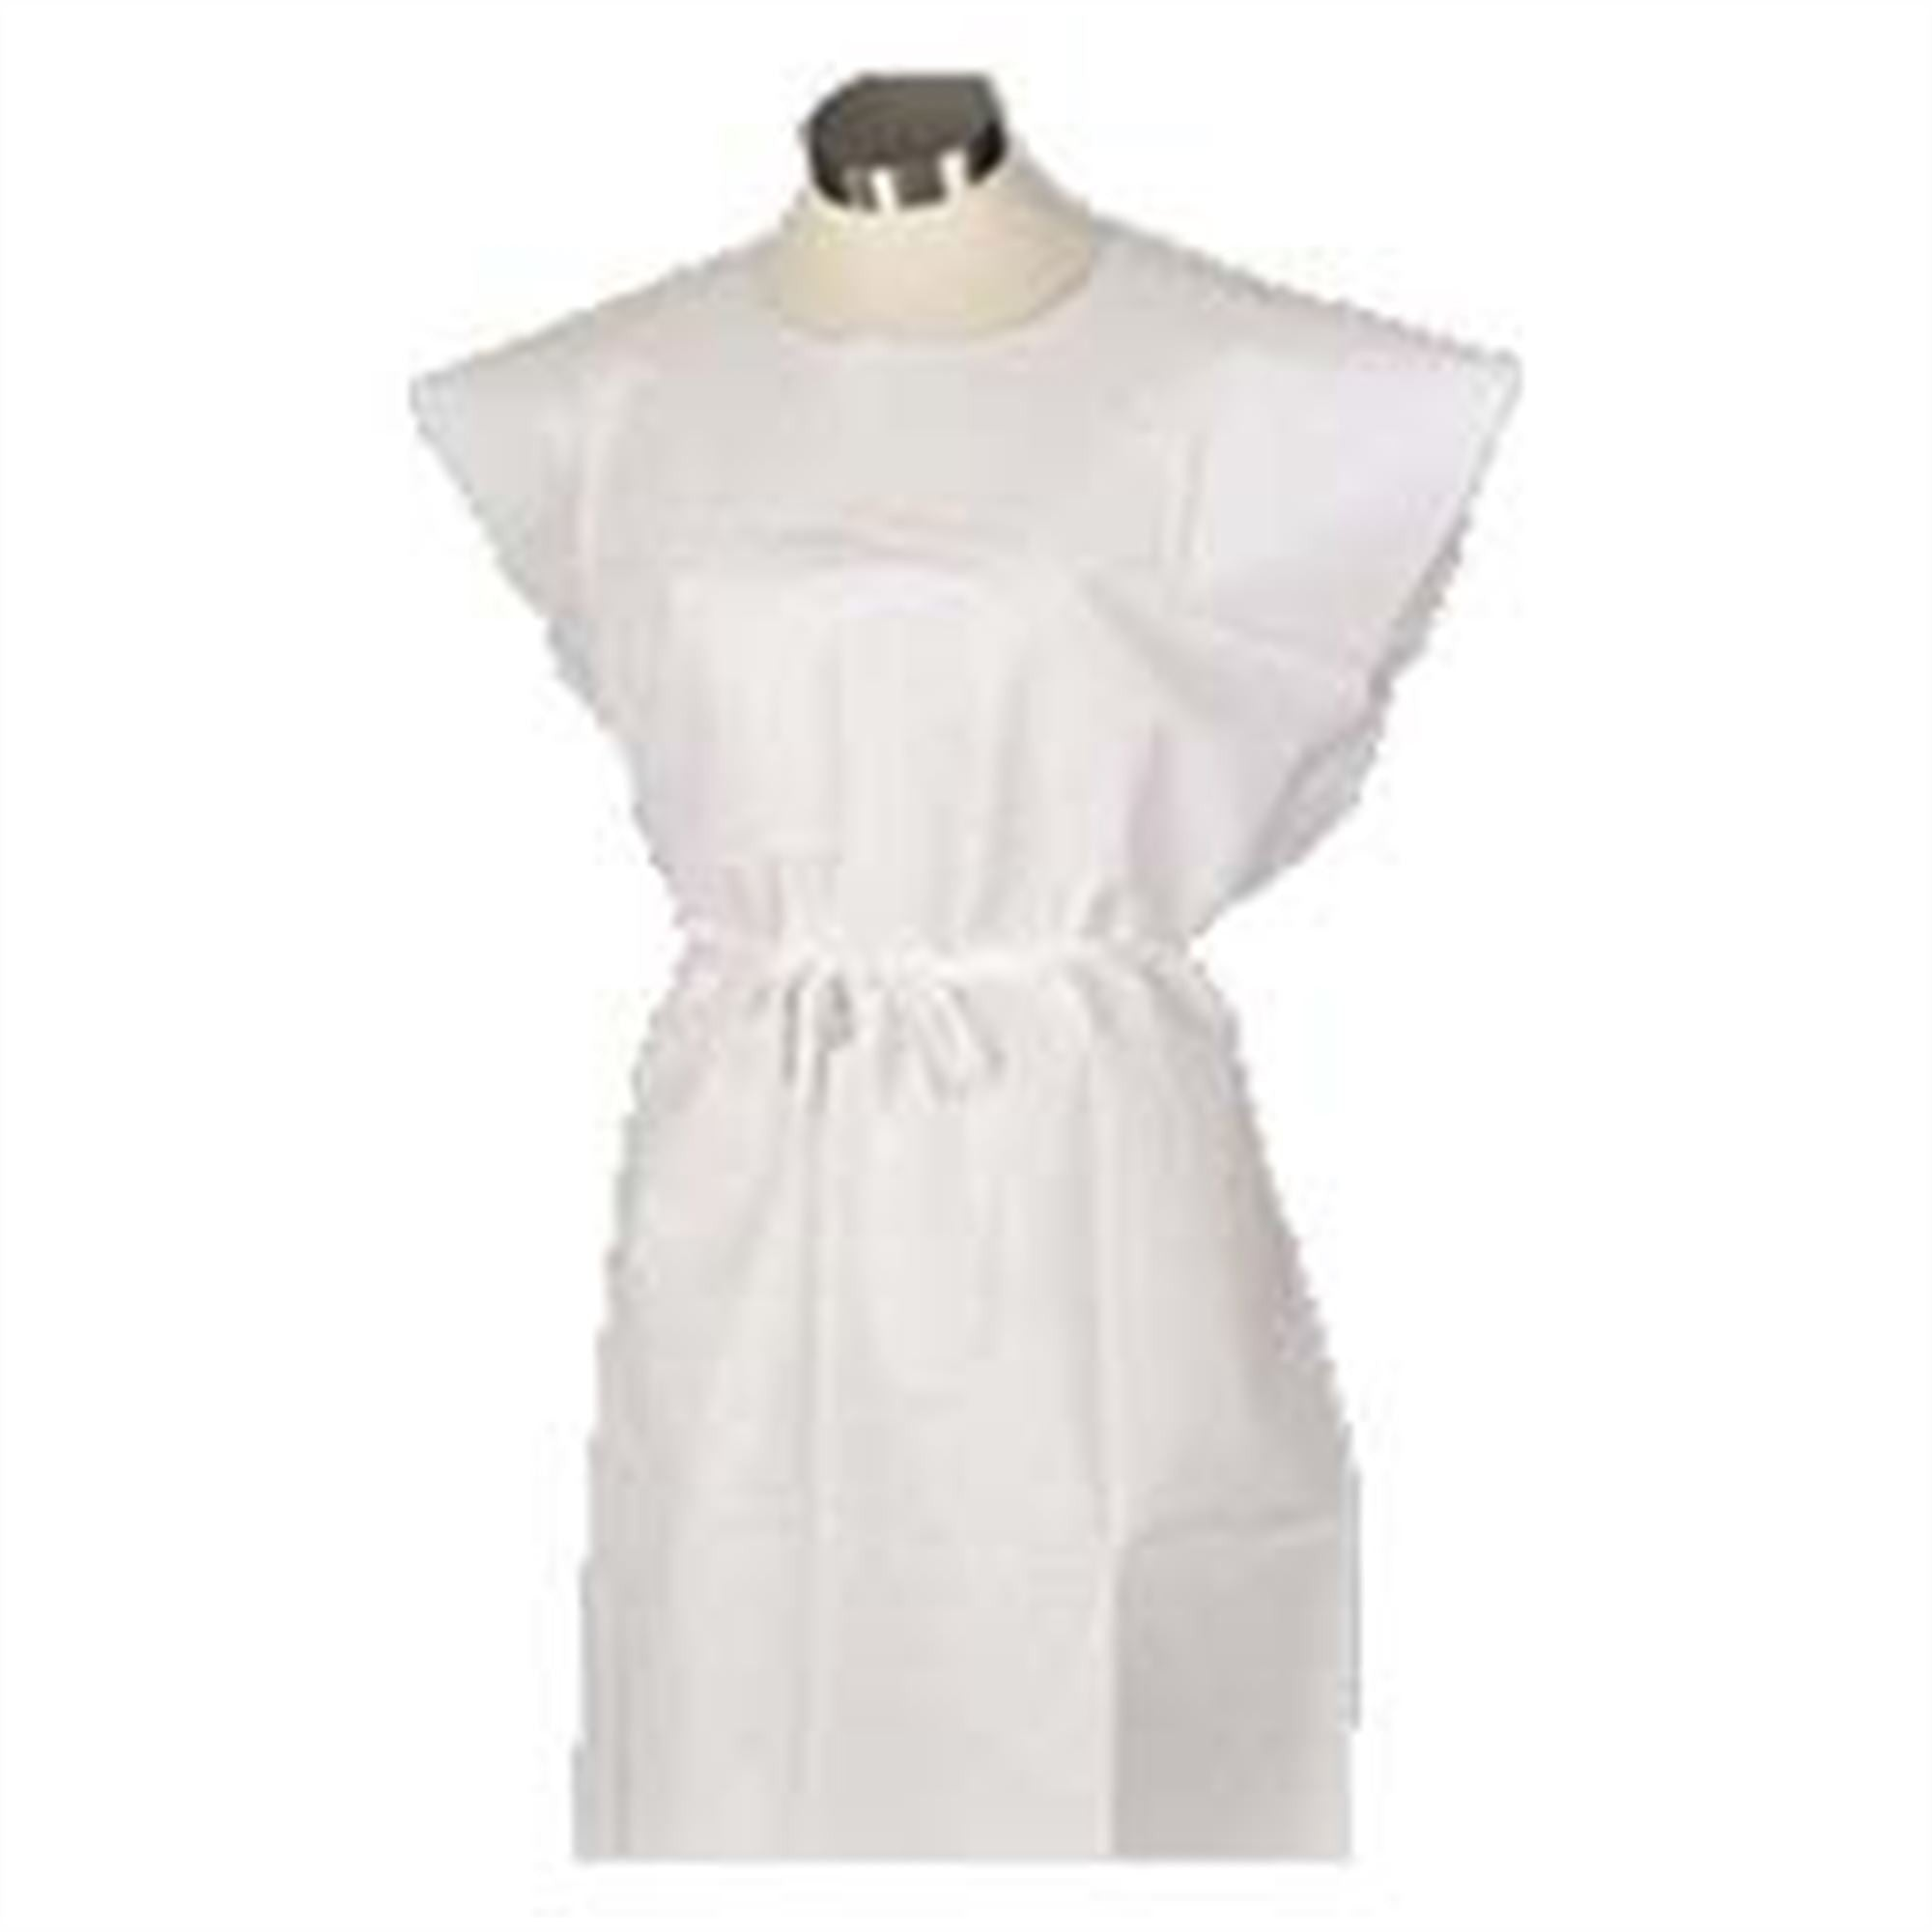 3-Ply Paper Disposable Medical Exam Gown 50/PK | CeilBlue